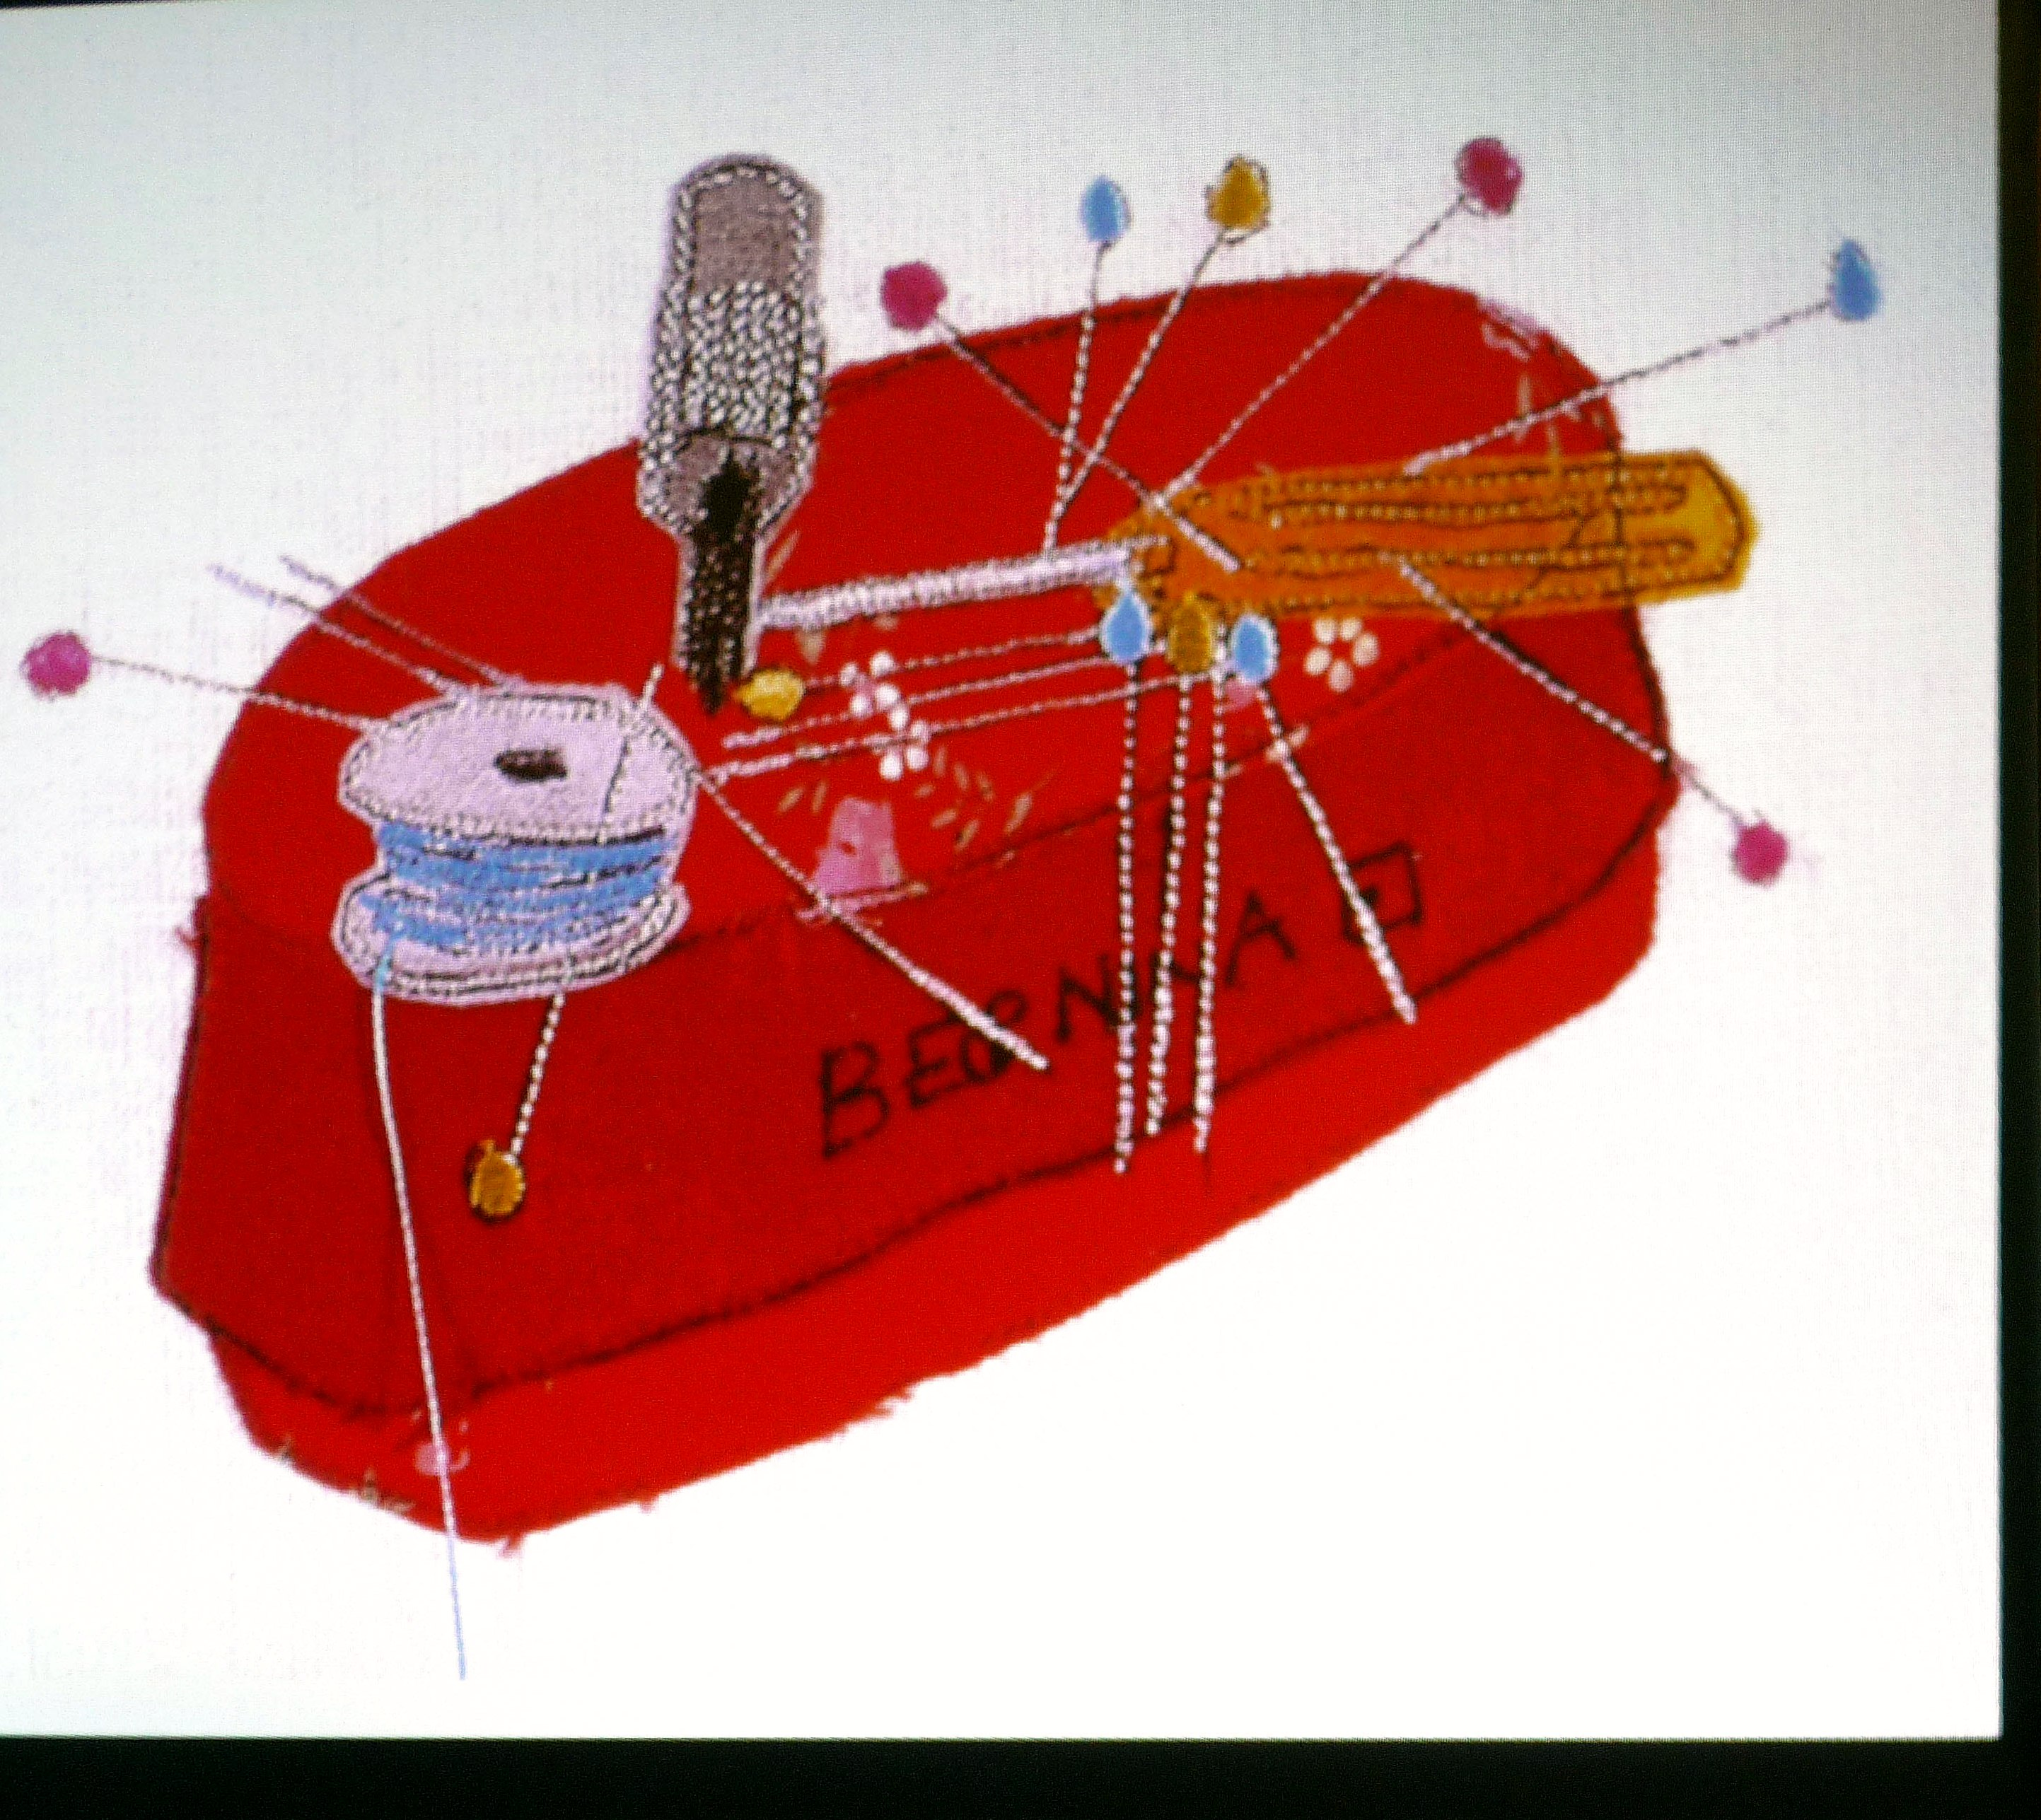 slide showing an applique embroidery by Rachael Howard